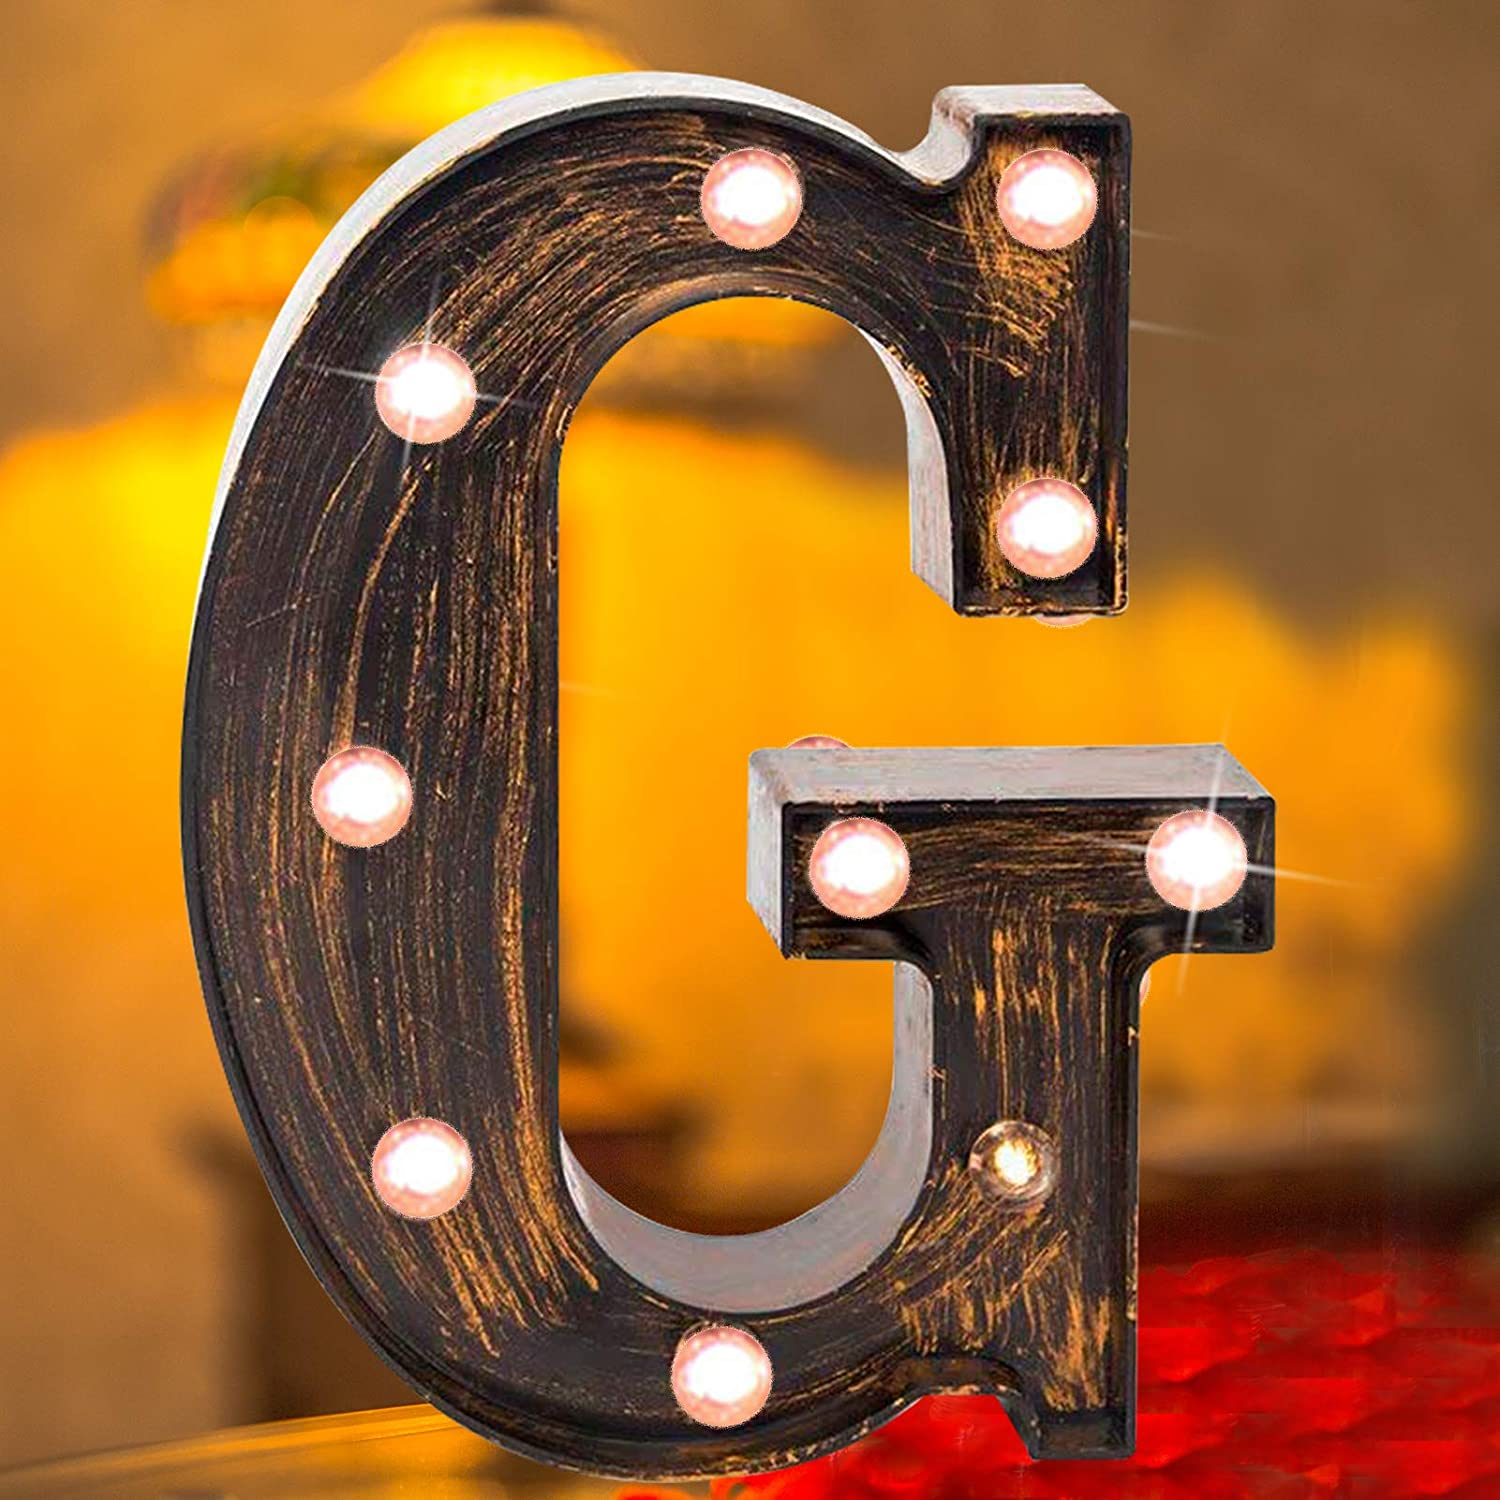 Vintage LED Marquee Letter Lights Light Up Industrial 26 Alphabet Name Signs Bar Cafe Initials Decor for Birthday Party Christmas Wedding Events(letter G)